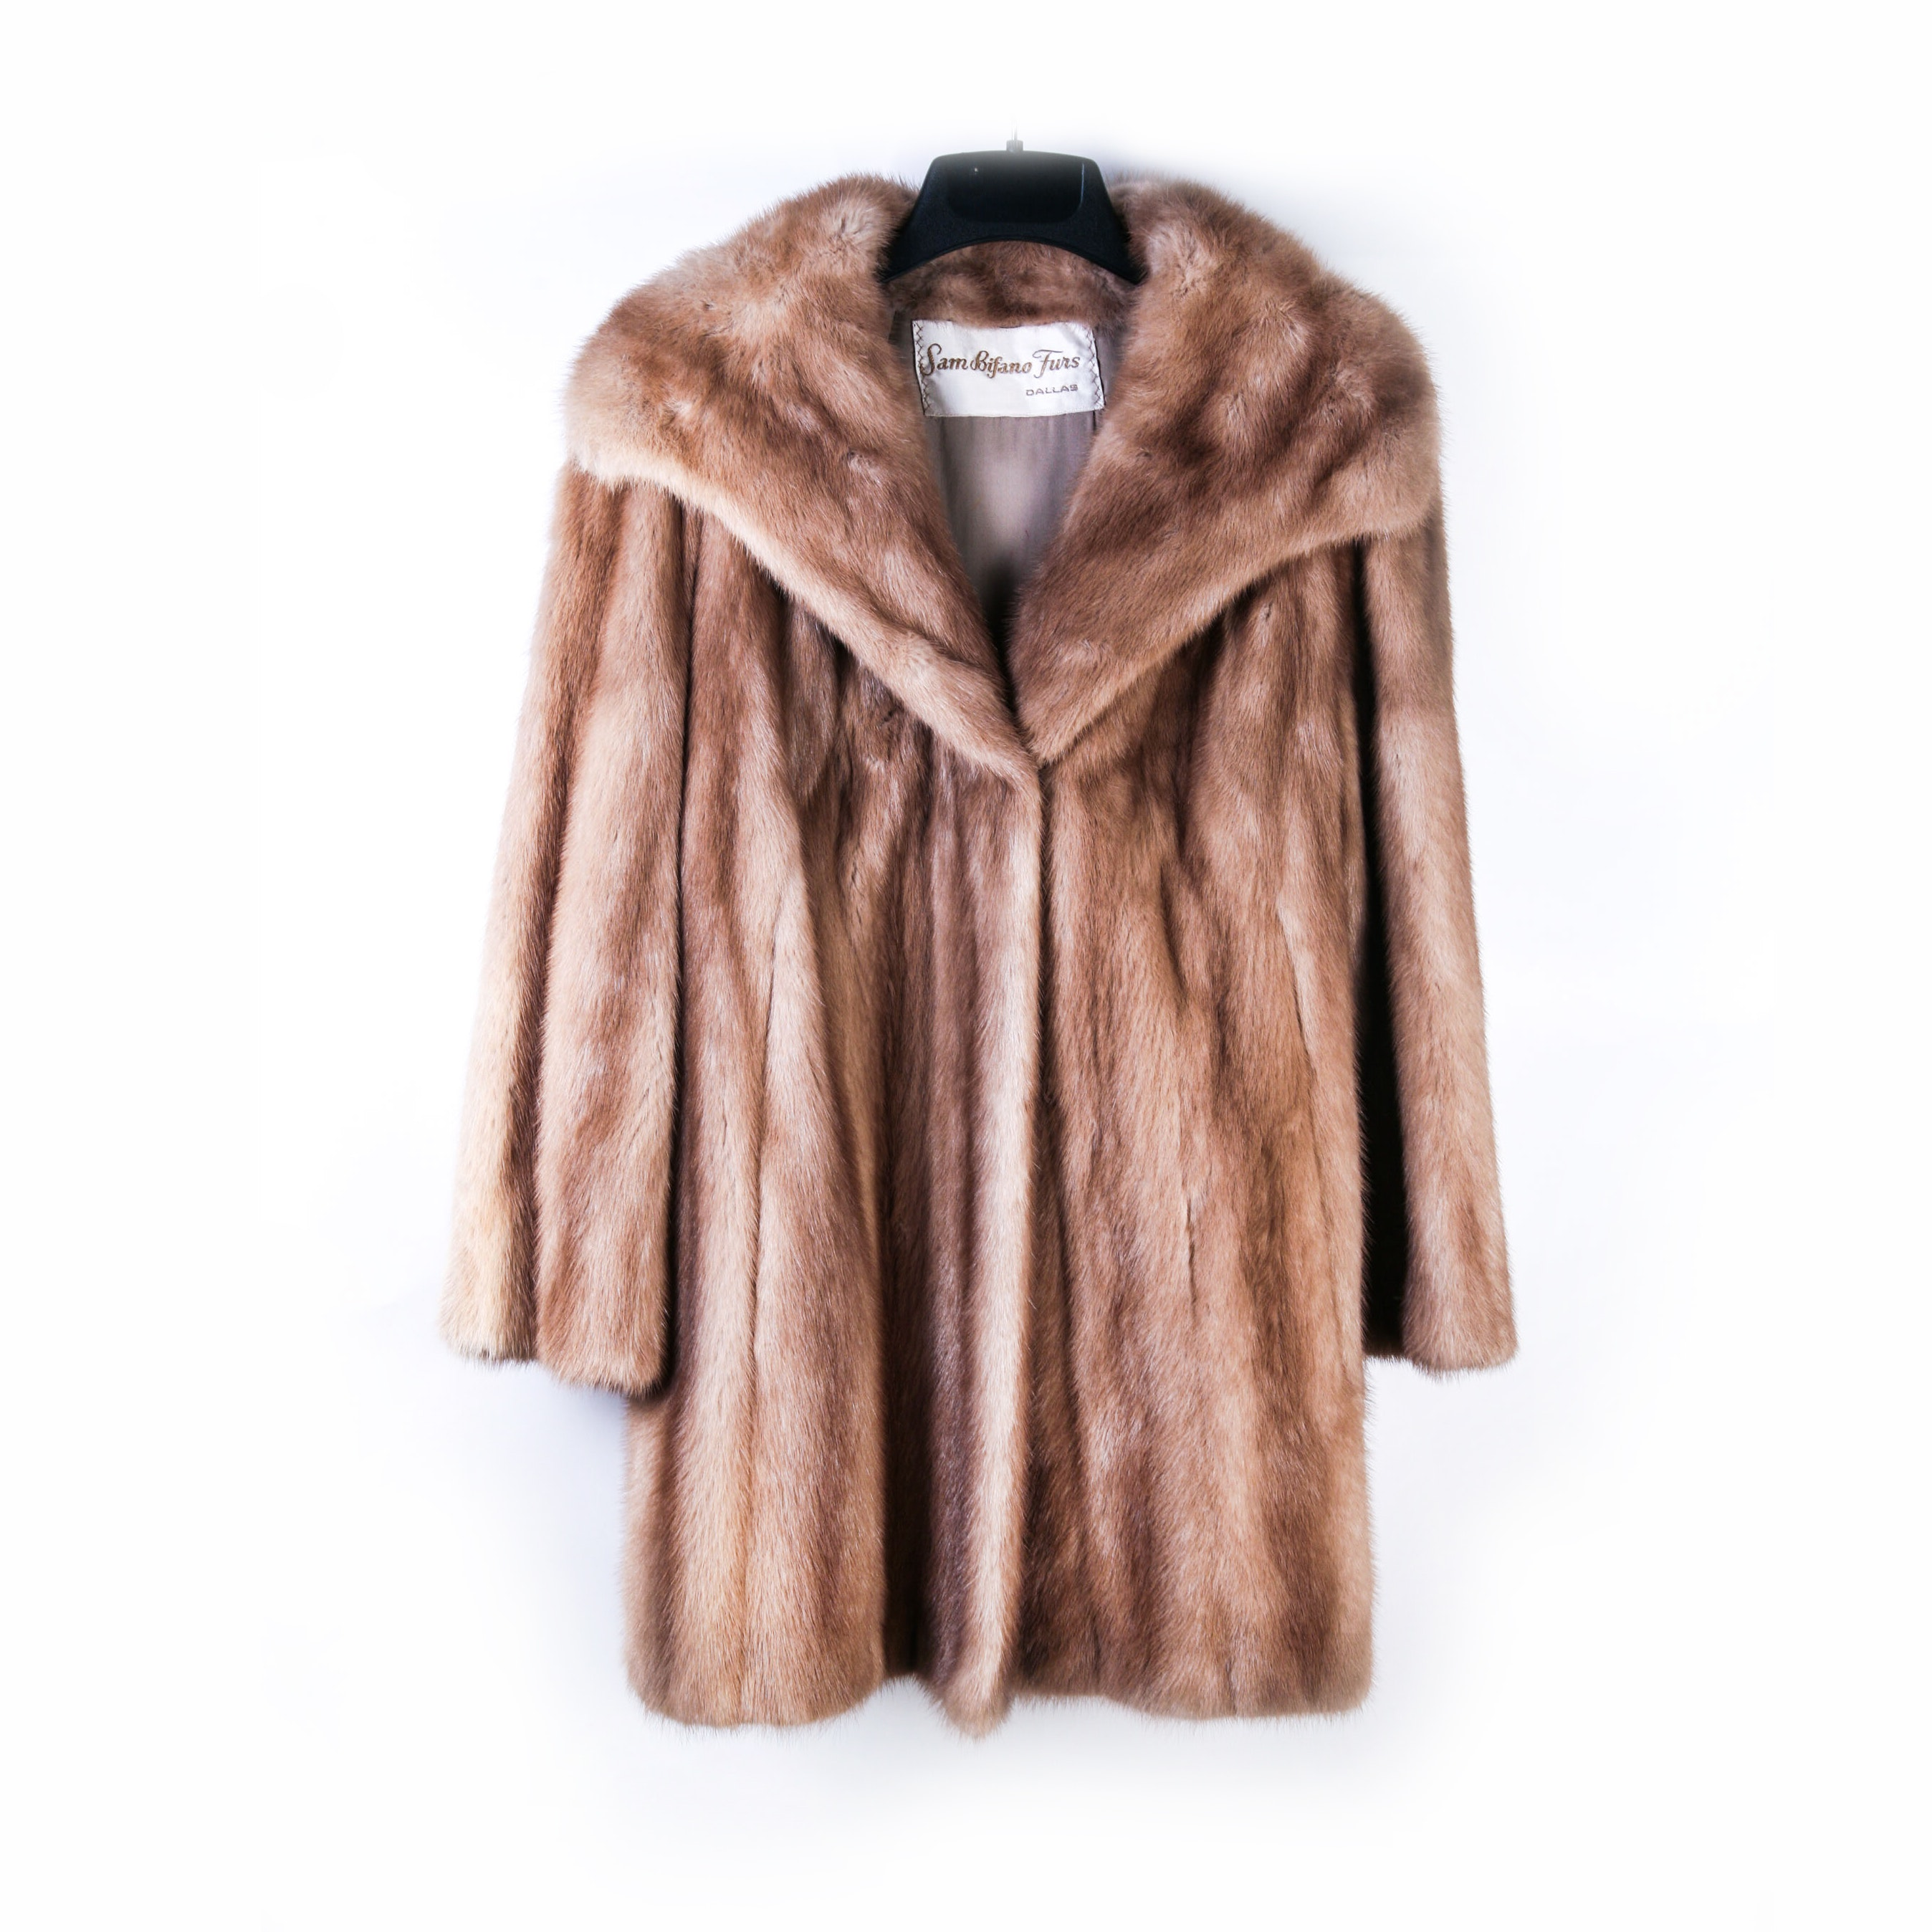 Vintage Mink Fur Coat by Sam Bifano Furs : EBTH